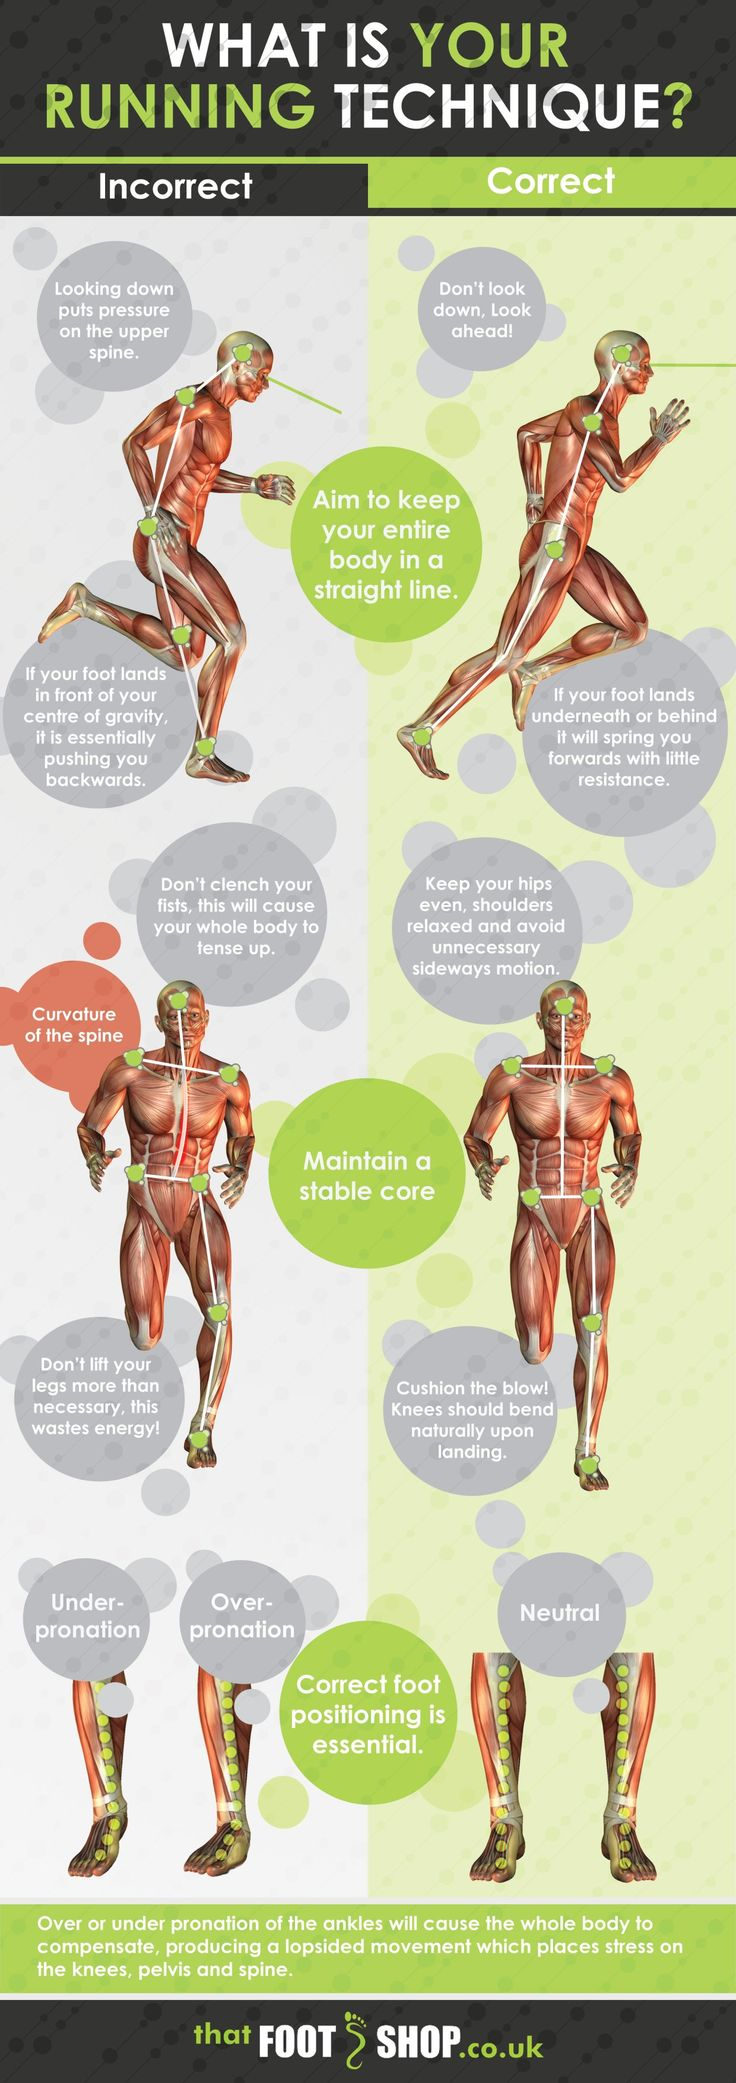 proper running form infographic